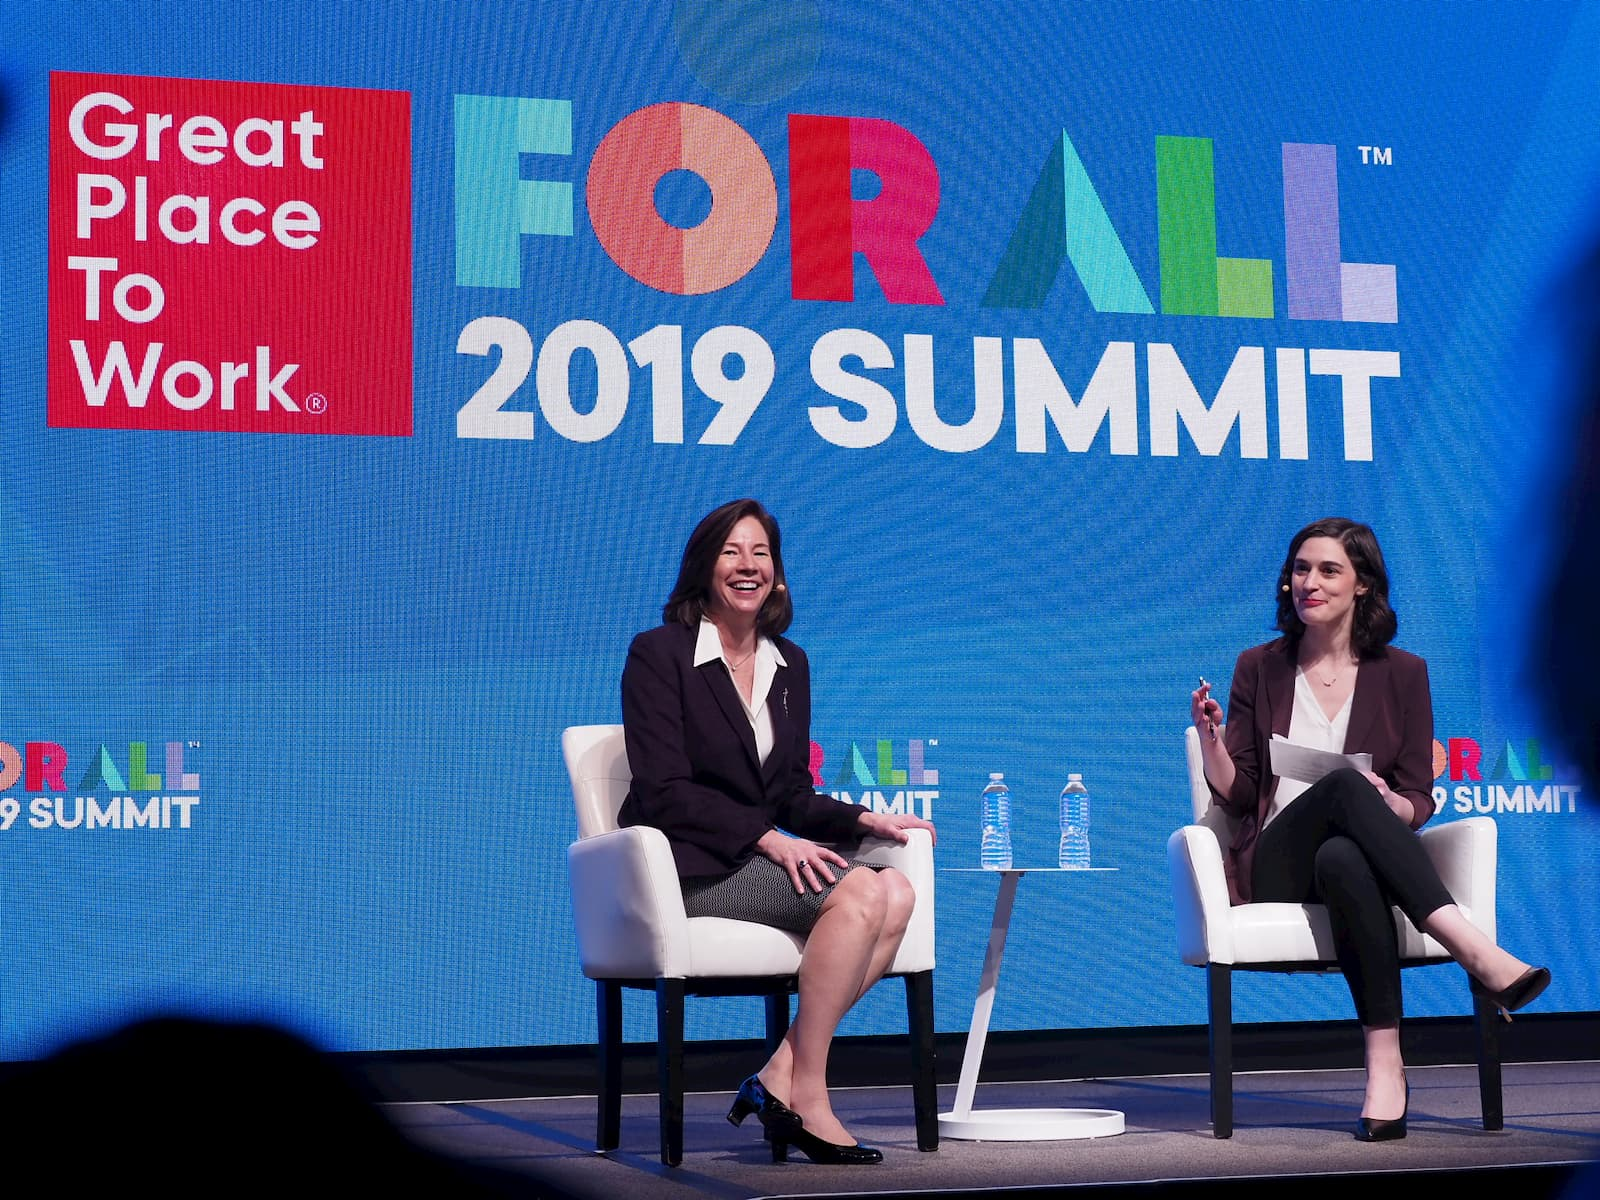 Highlights from the 2019 Great Place to Work For All Summit